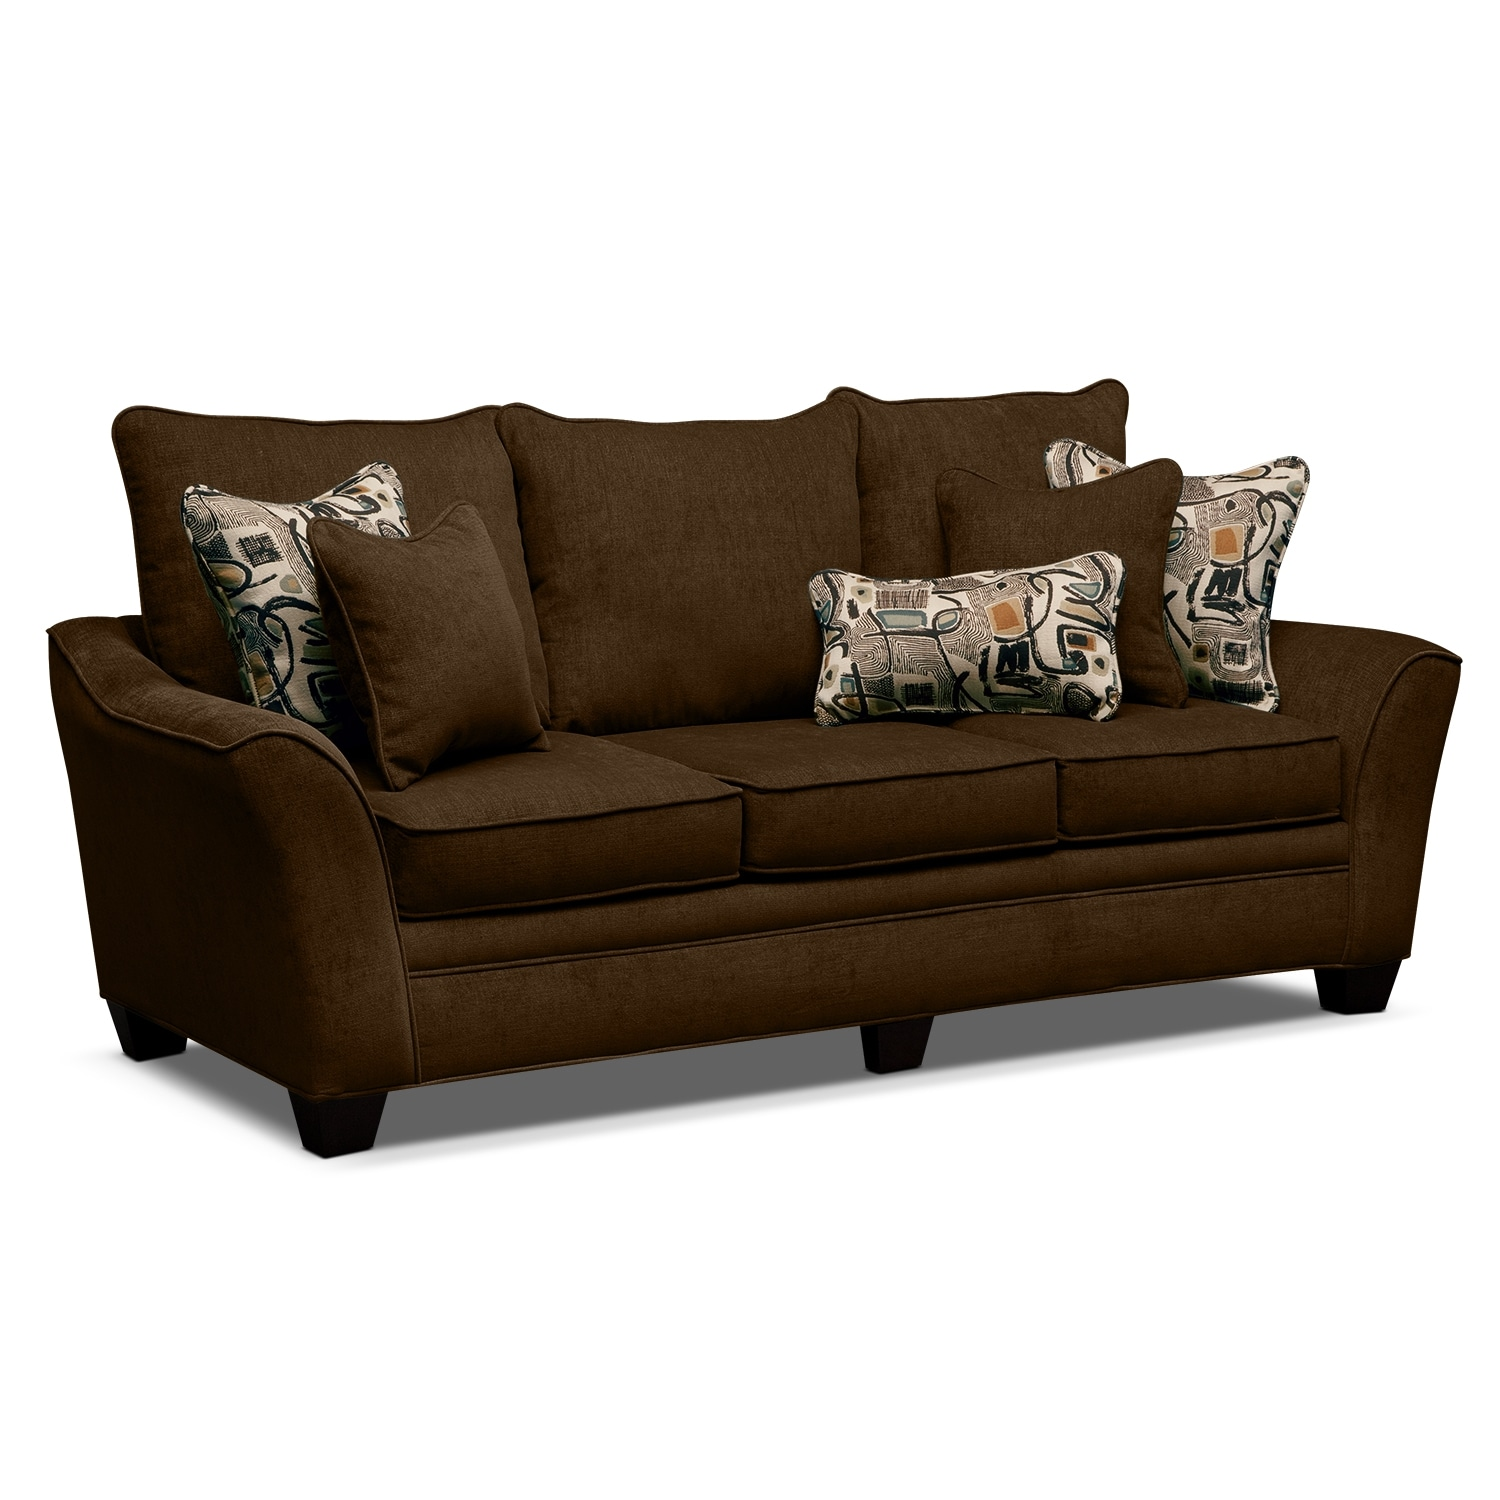 Cheap Large Cushions Online picture on Cheap Large Cushions Onlinec257ecd4f95004dc77691d7e0fadfaef with Cheap Large Cushions Online, sofa f07e351ccb318a19e28ffff83bc14455